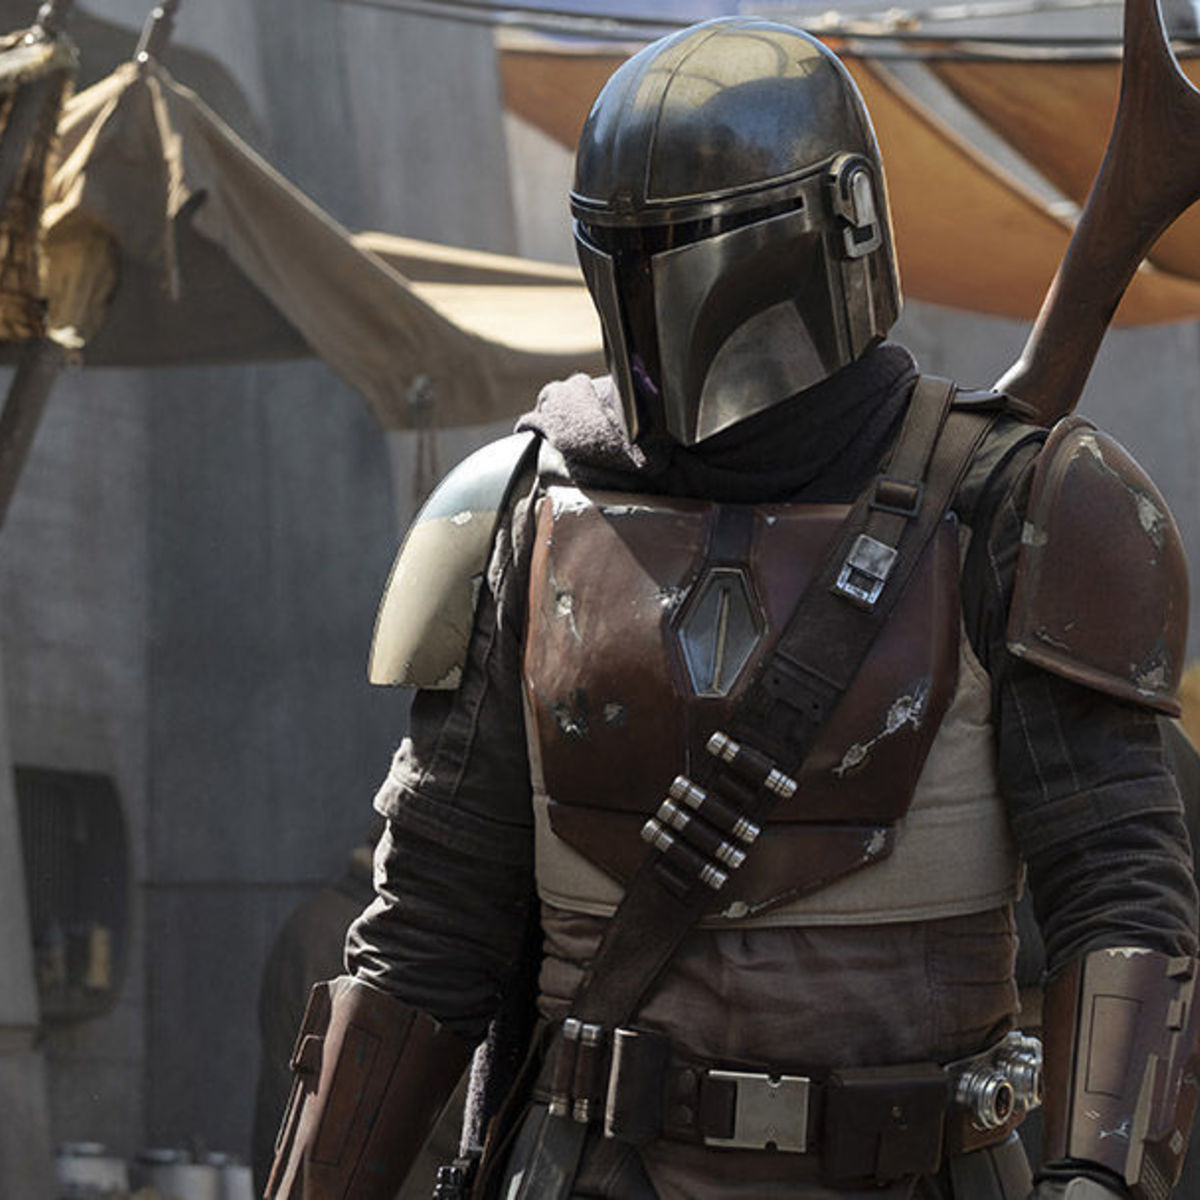 'Star Wars': Joe Russo Praises Jon Favreau's Visual Approach For 'The Mandalorian'